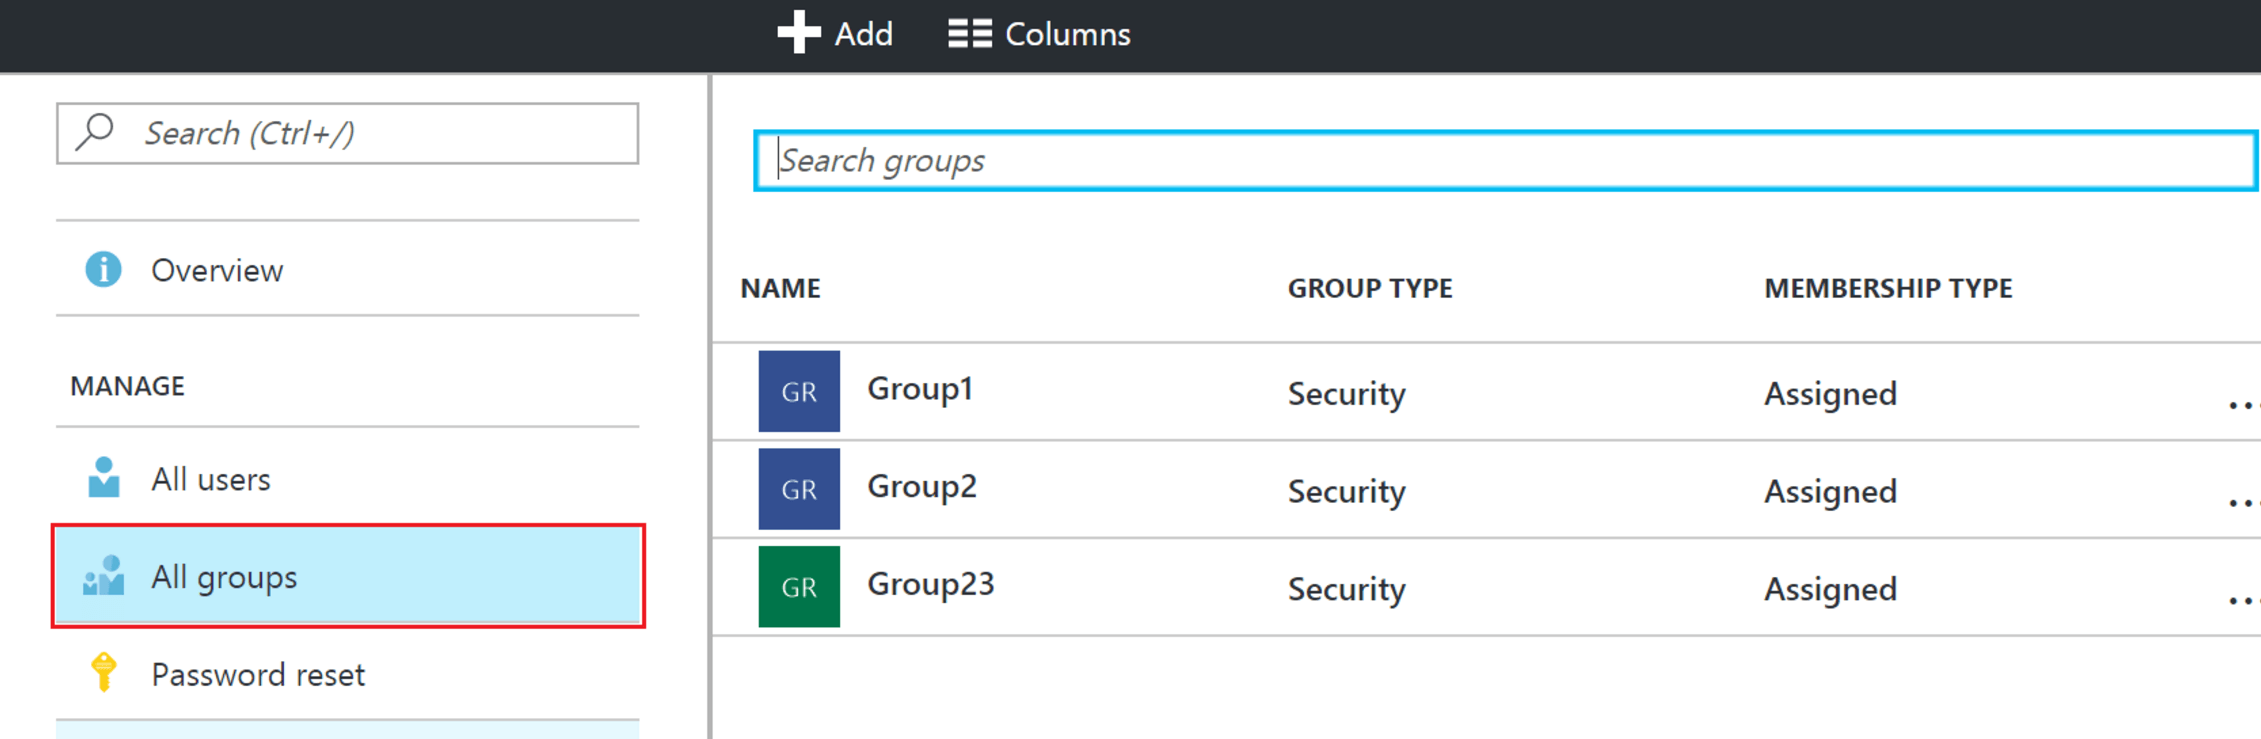 Admin_manage - How To Manage Office 365 Groups